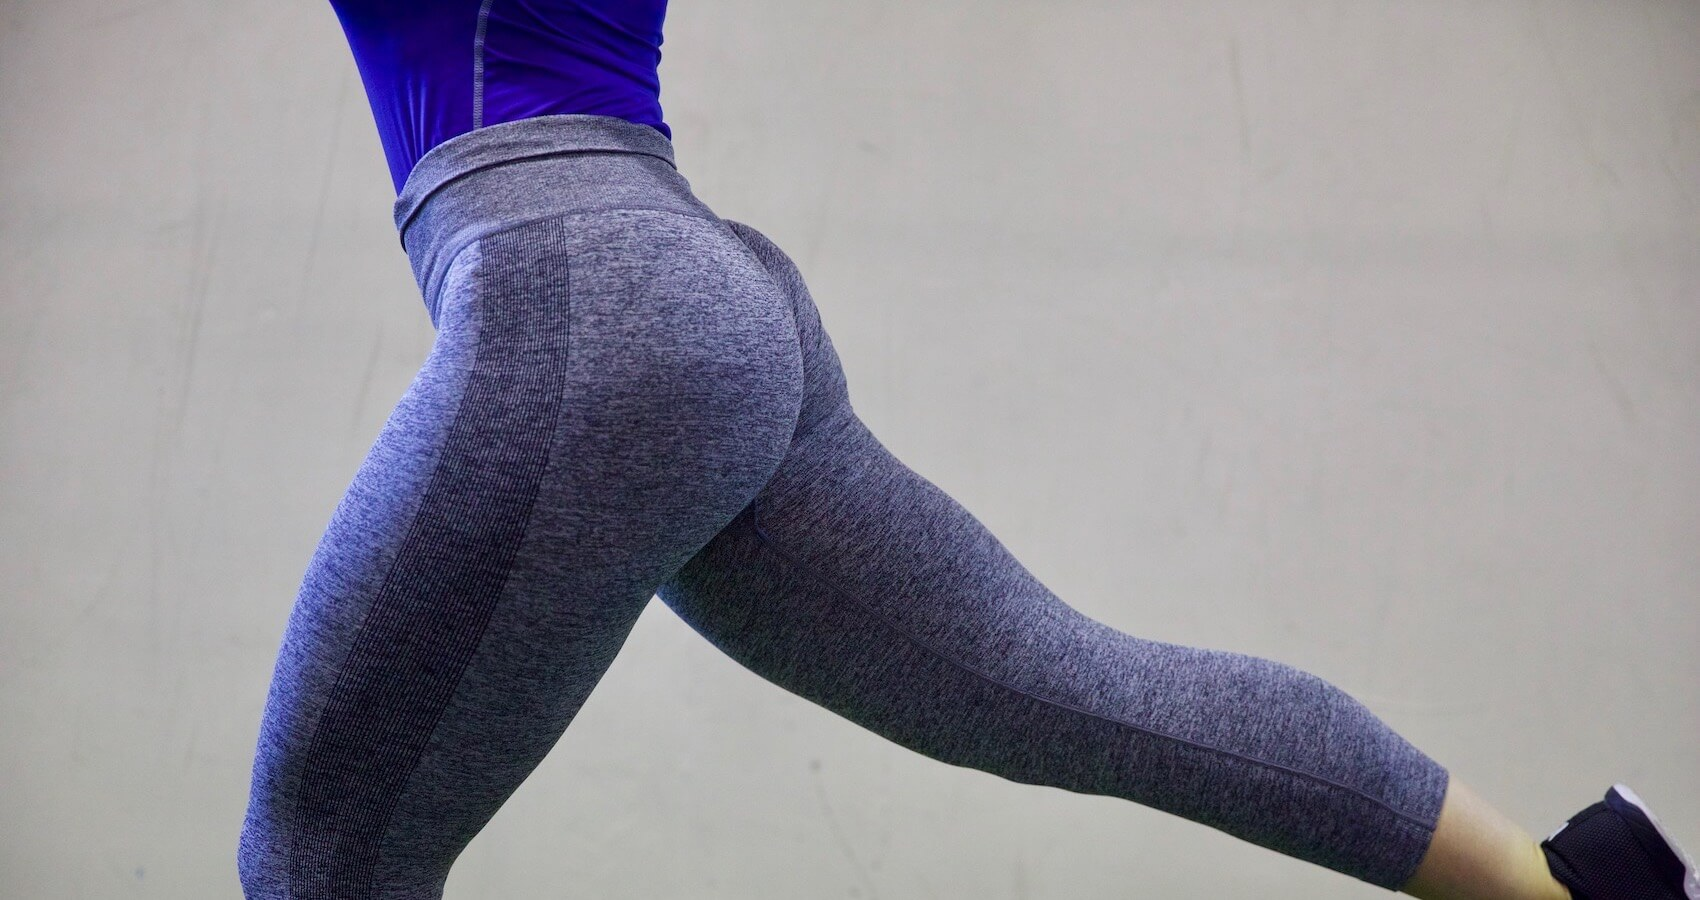 4 Exercises to Start Building Your Booty